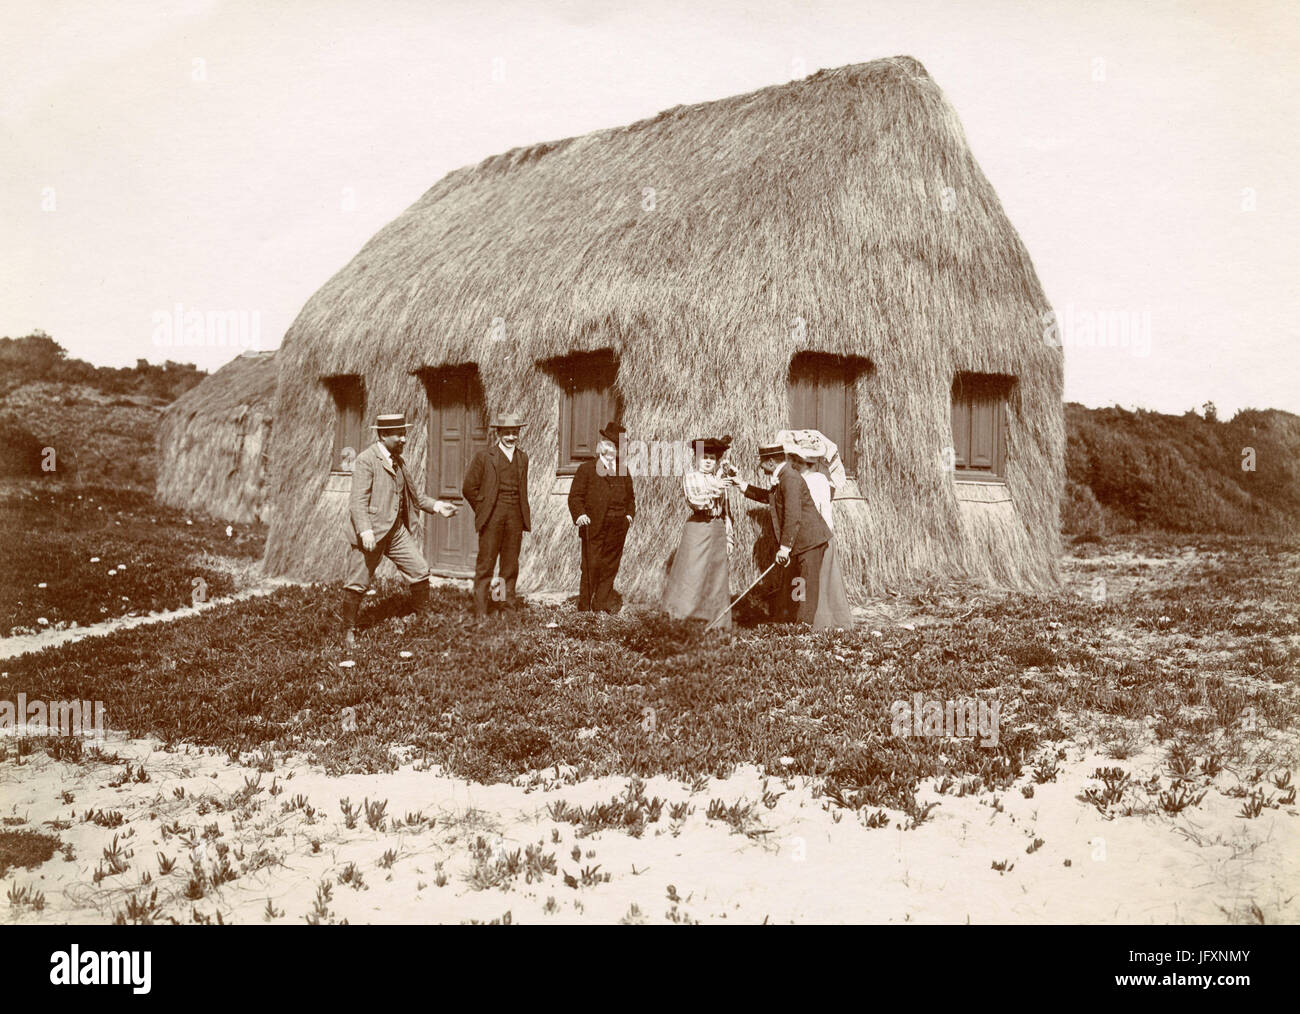 Hay hut on the beach of Castelporziano, Italy 1904 - Stock Image